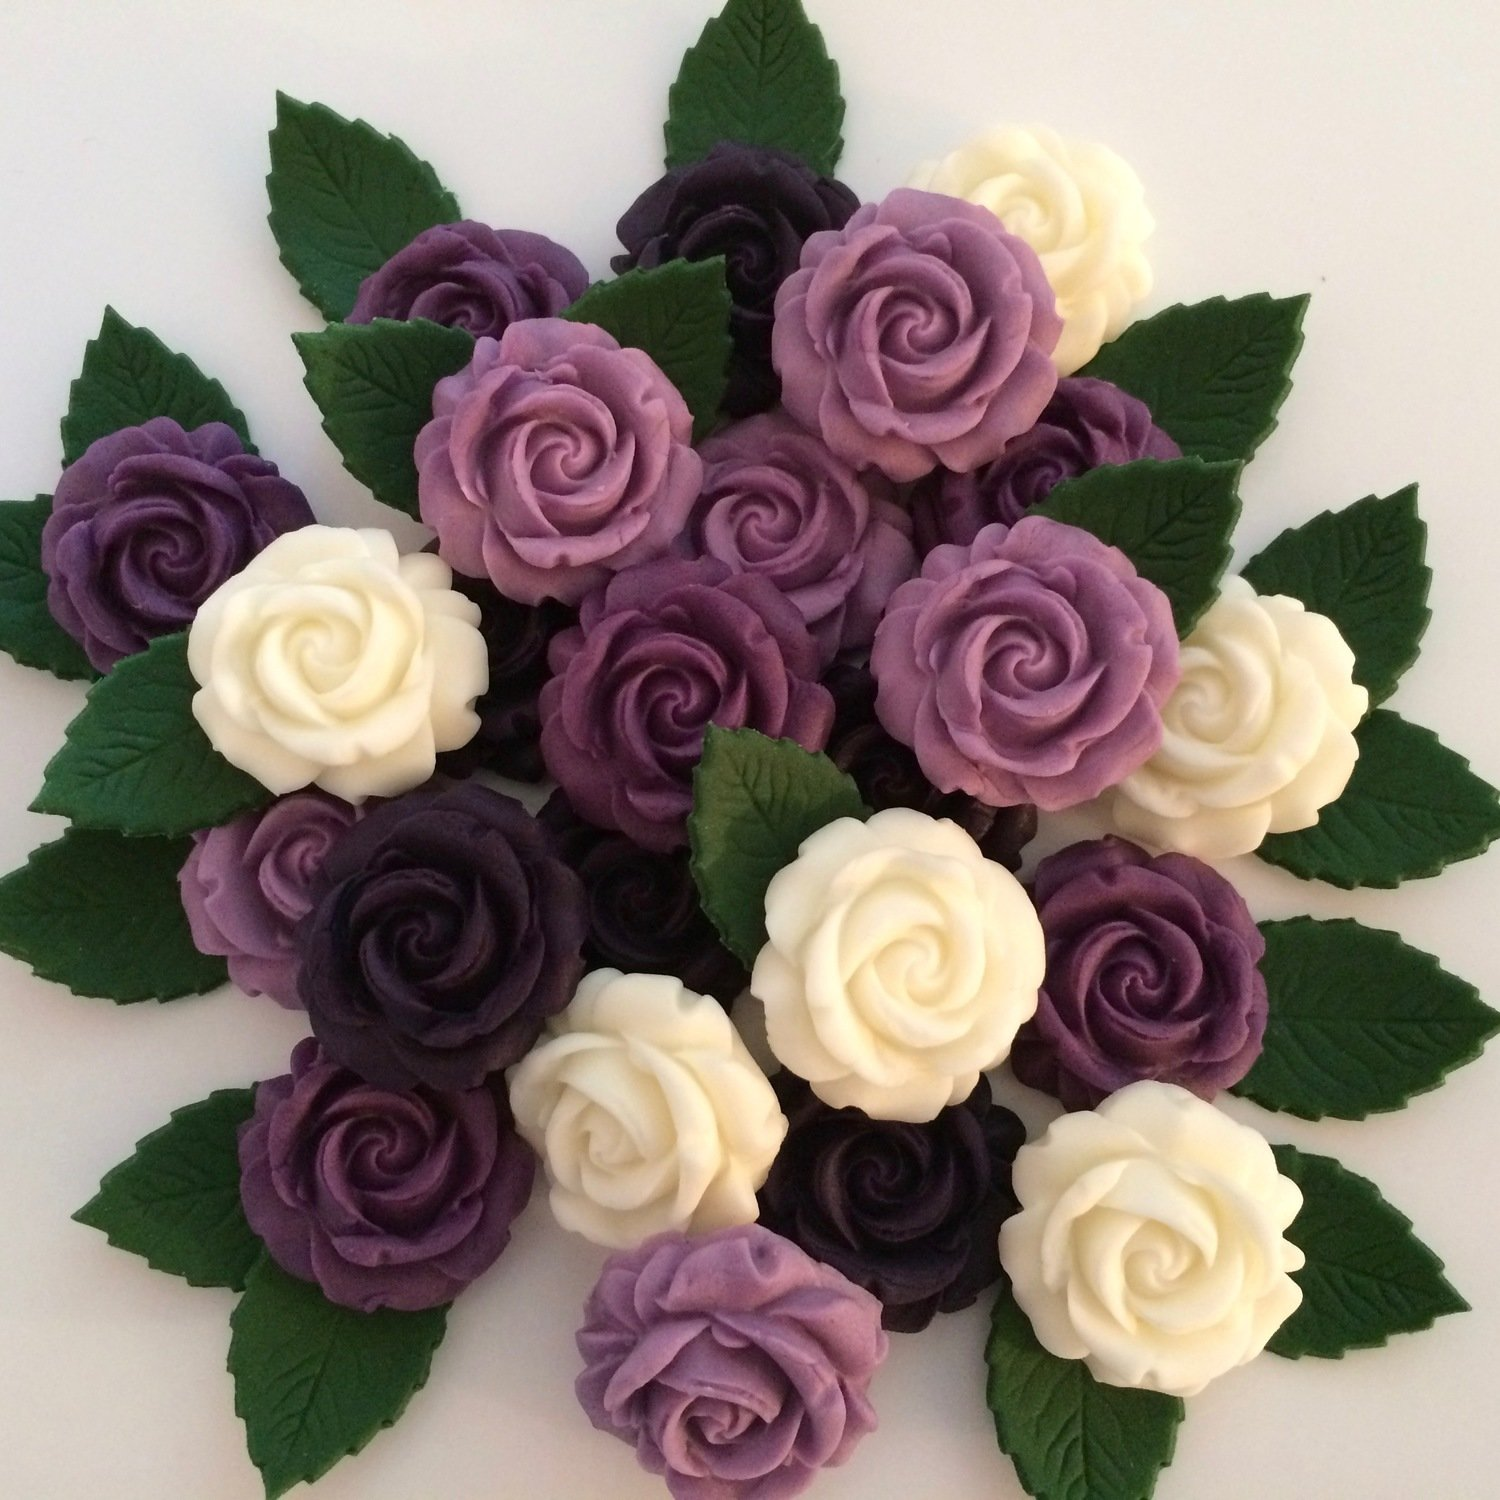 Purple Mix Roses & Leaves